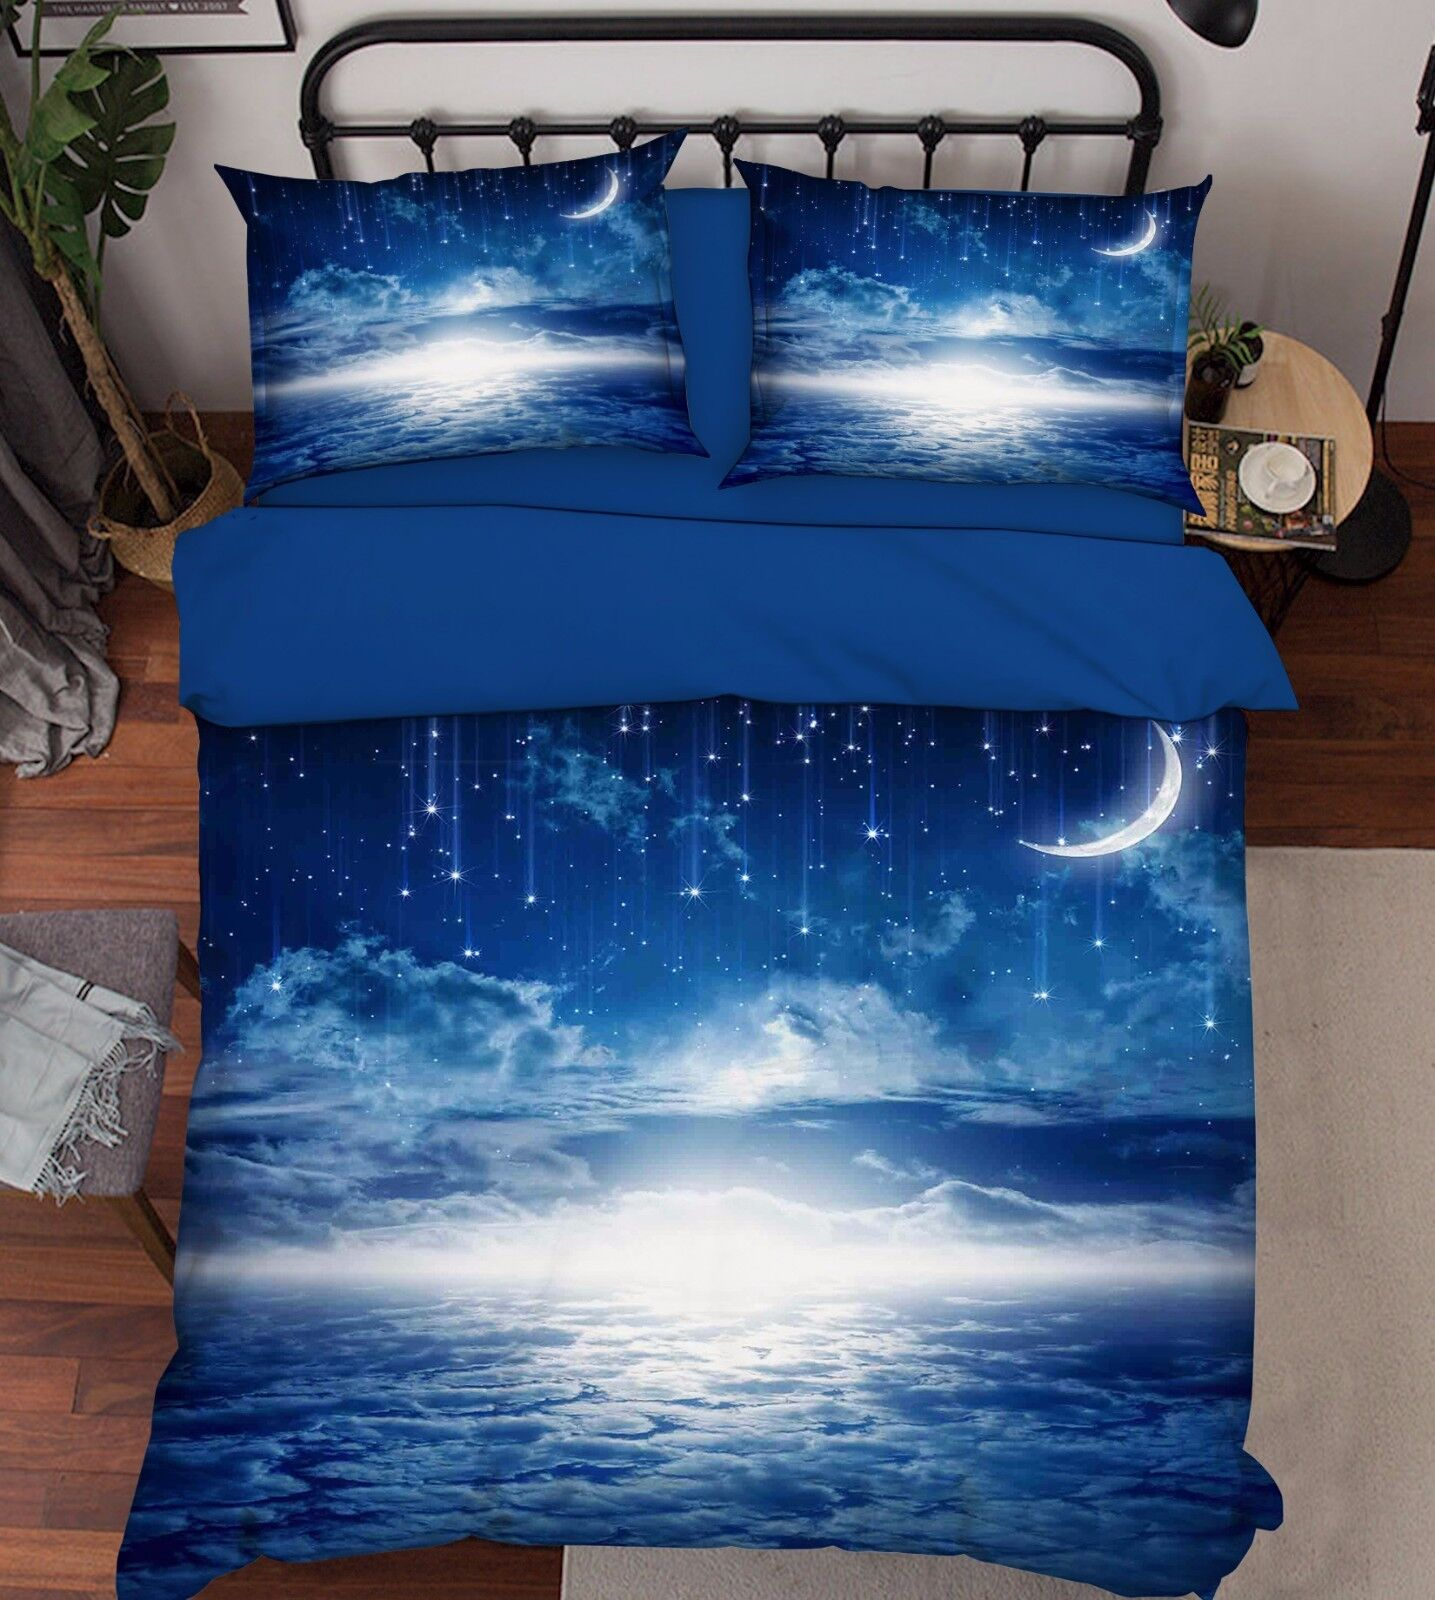 3D Moon View 886 Bed Pillowcases Quilt Duvet Cover Set Single Queen UK Carly